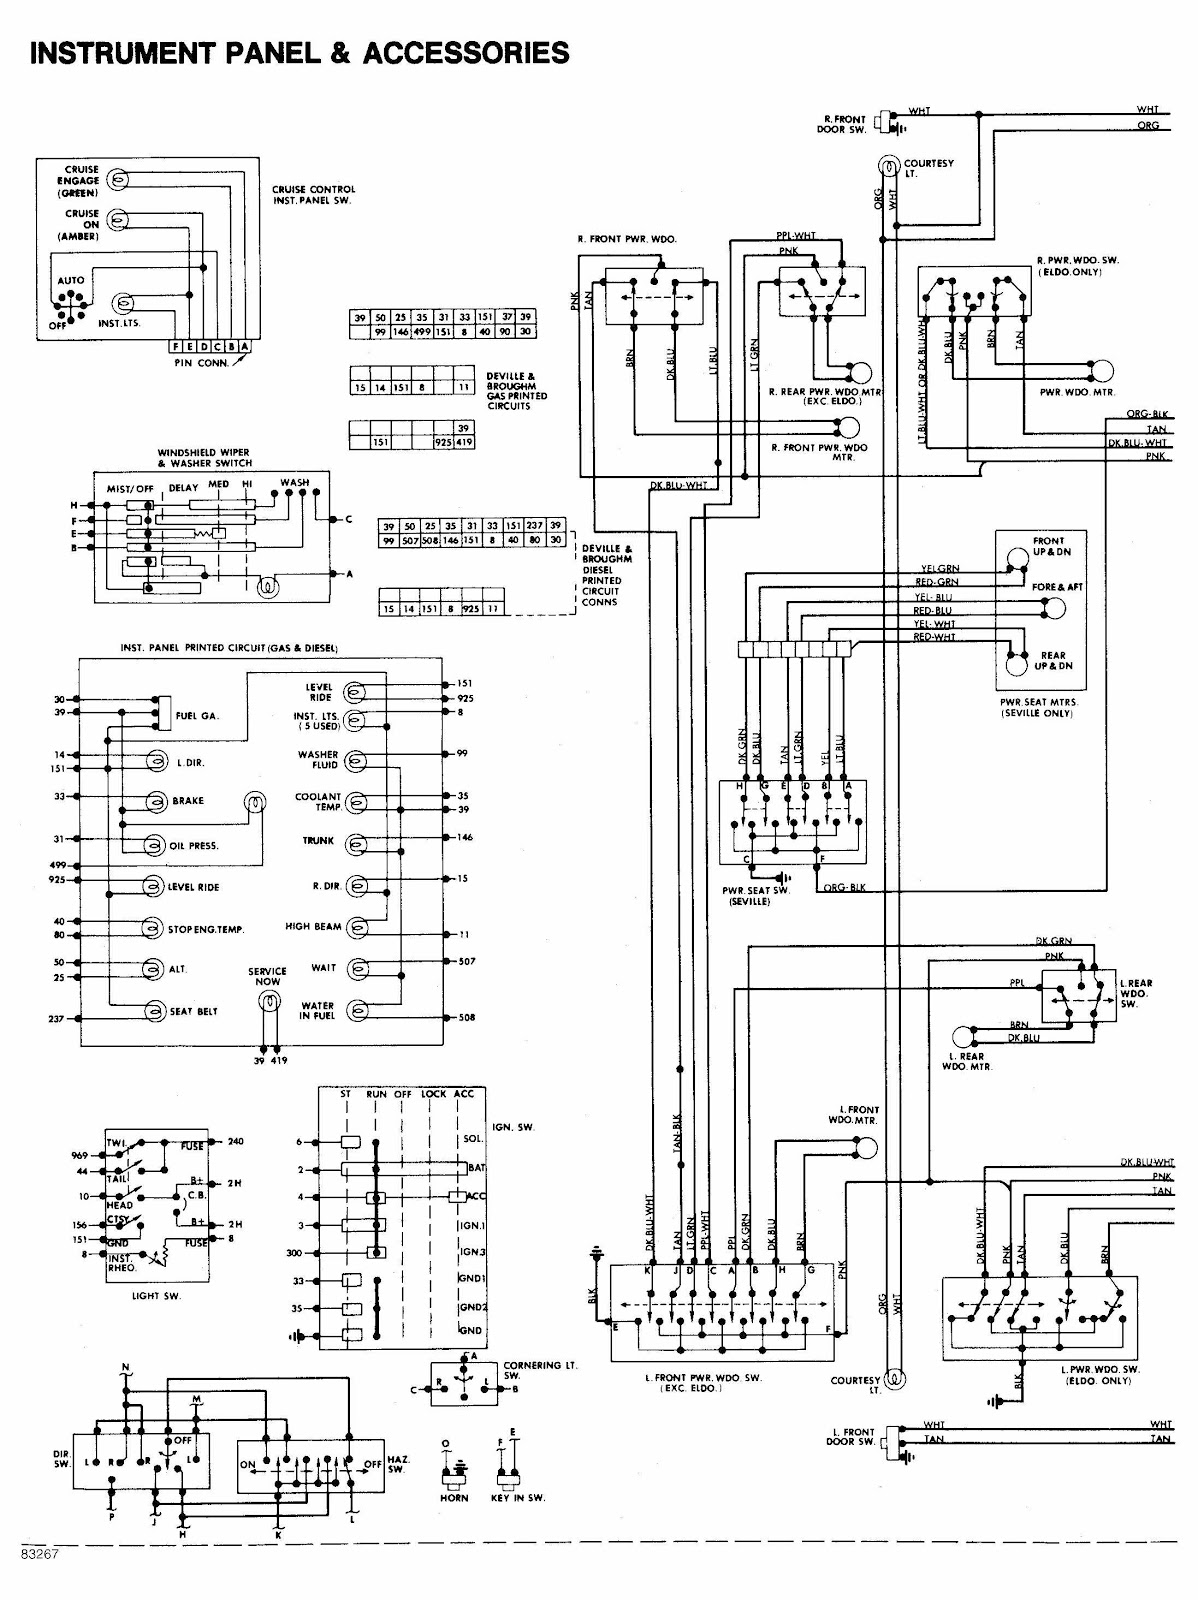 Cadillac Deville Instrument Panel And Accessories Wiring Diagram on Ford One Wire Alternator Wiring Diagram